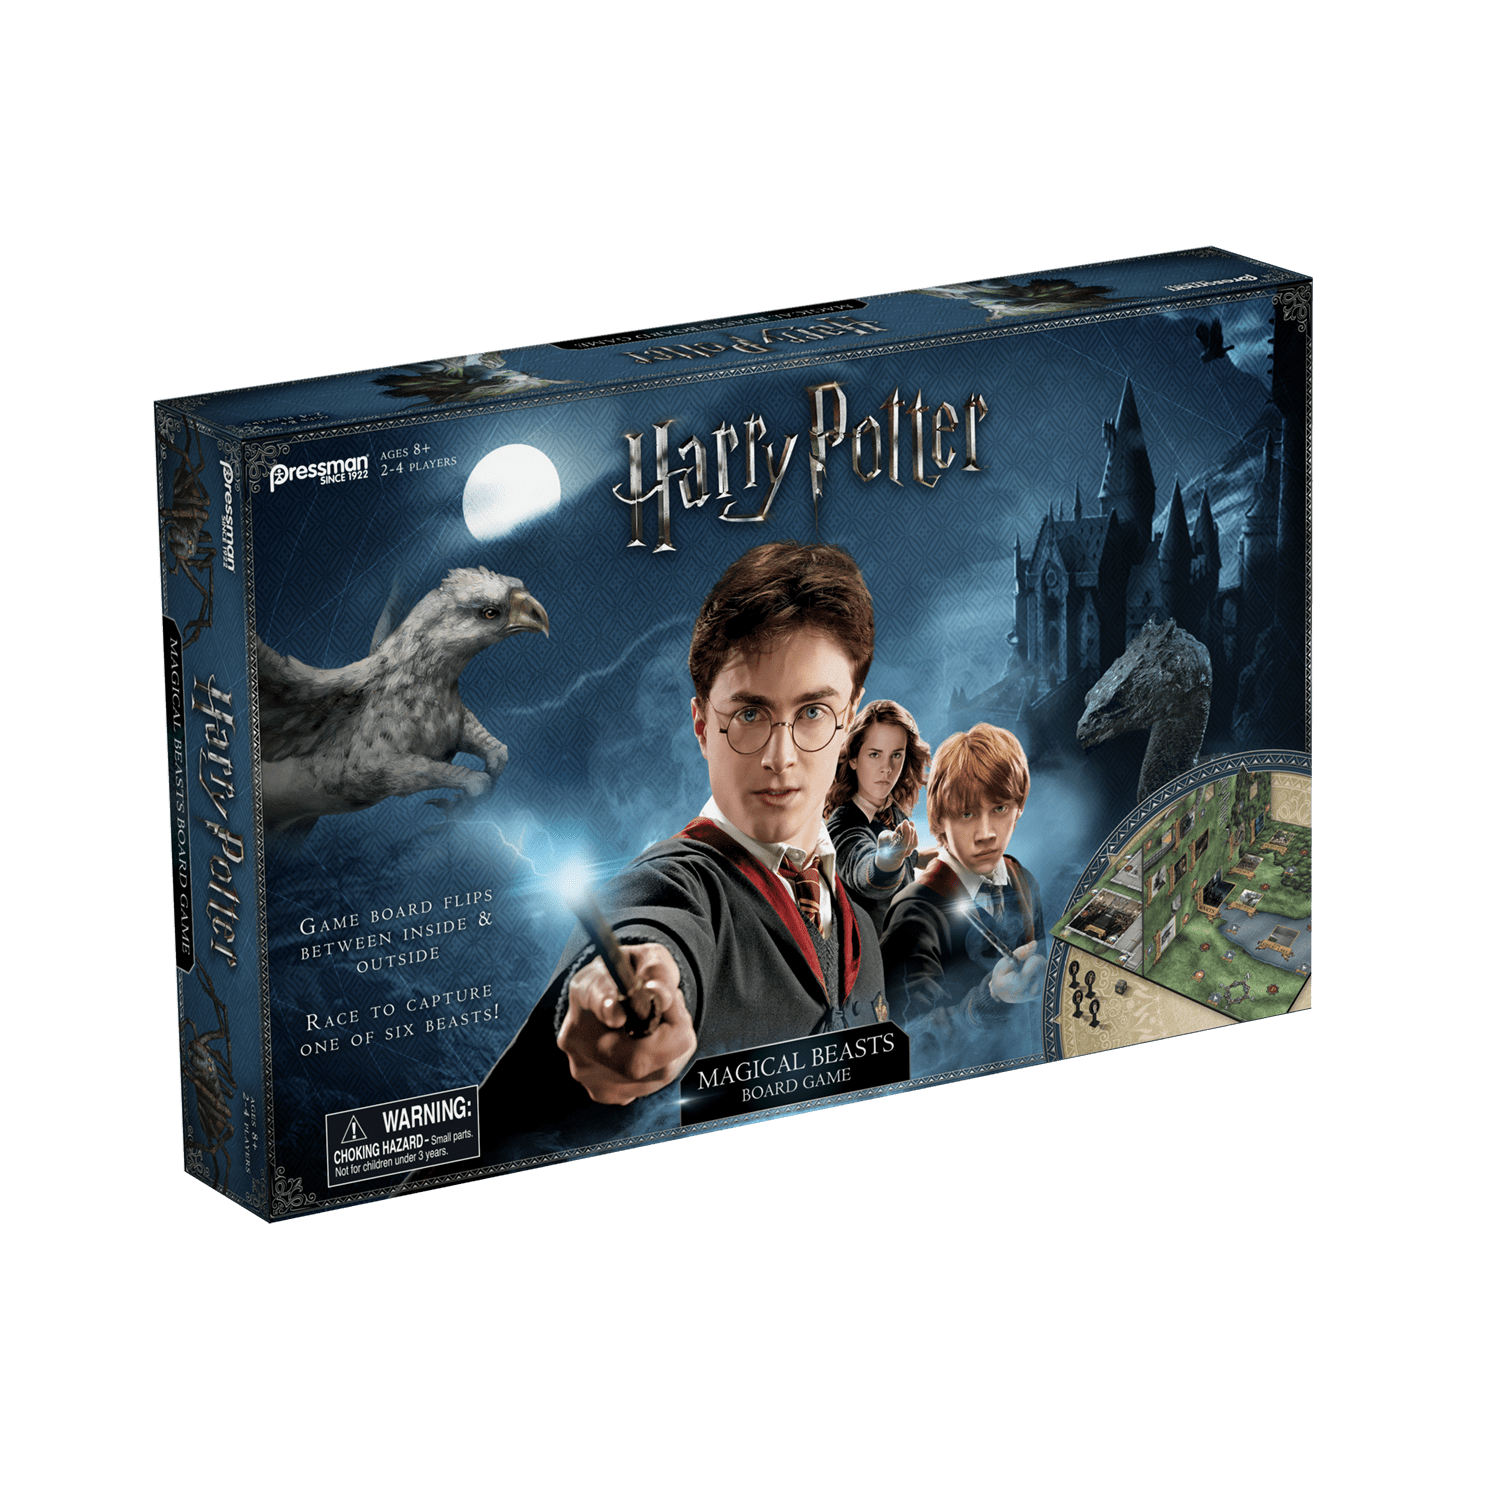 Harry Potter Magical Beasts Board Game by Pressman